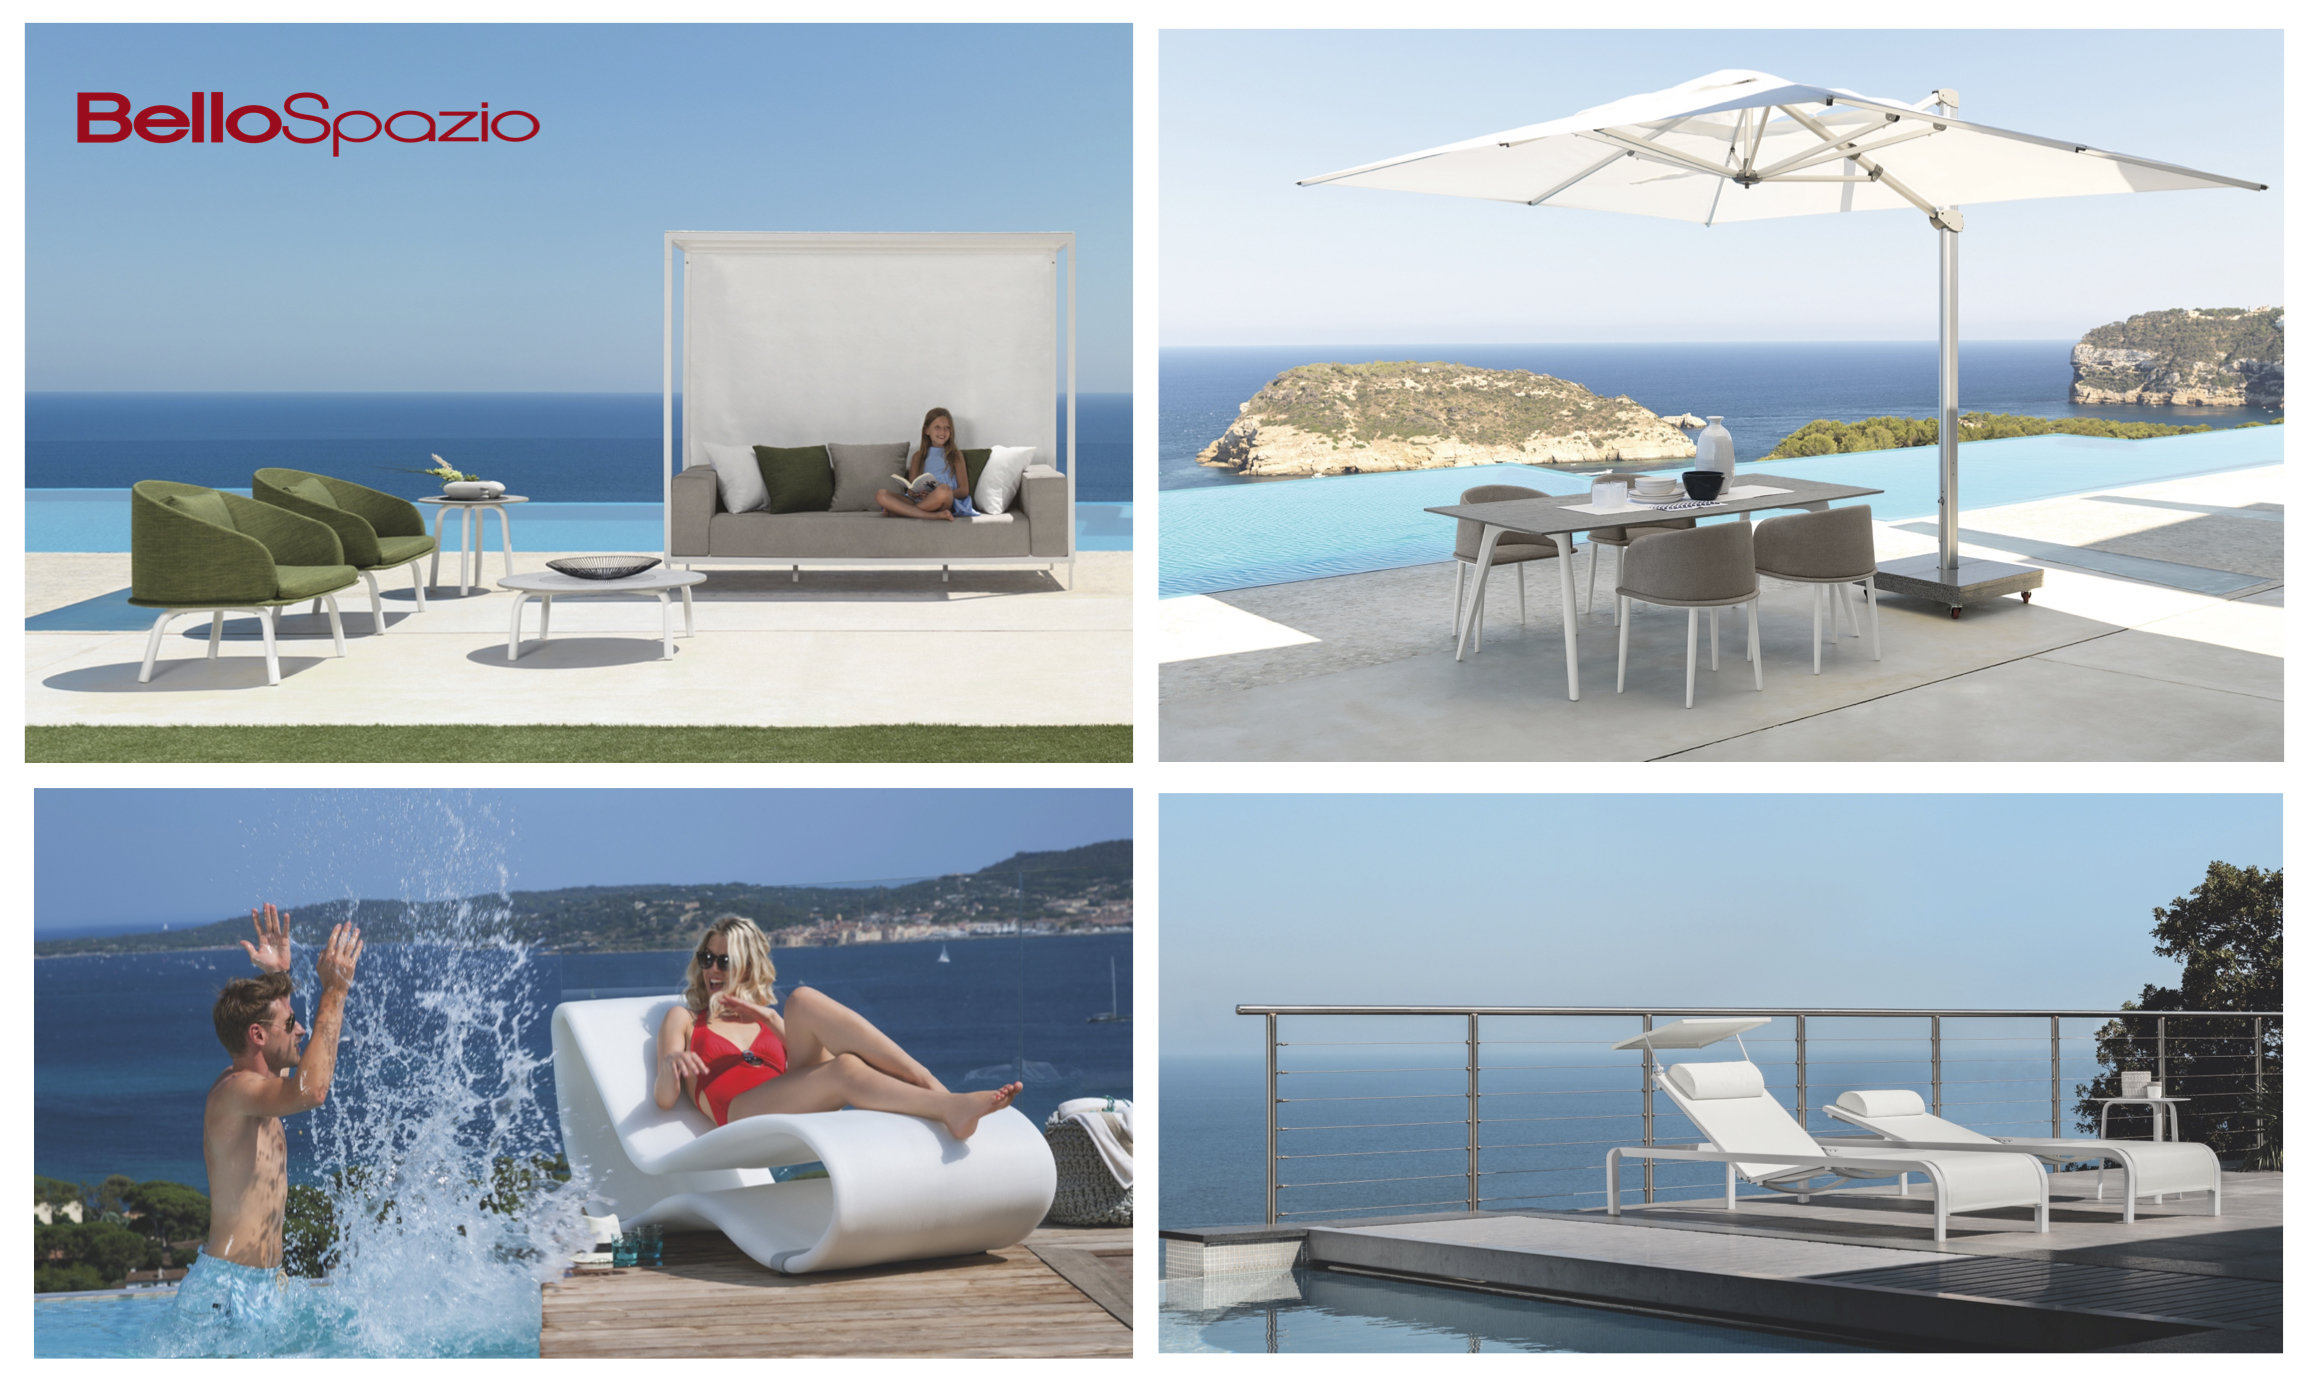 Outdoor Sofas - coffee tables - Armchairs - Umbrellas - Sunbeds